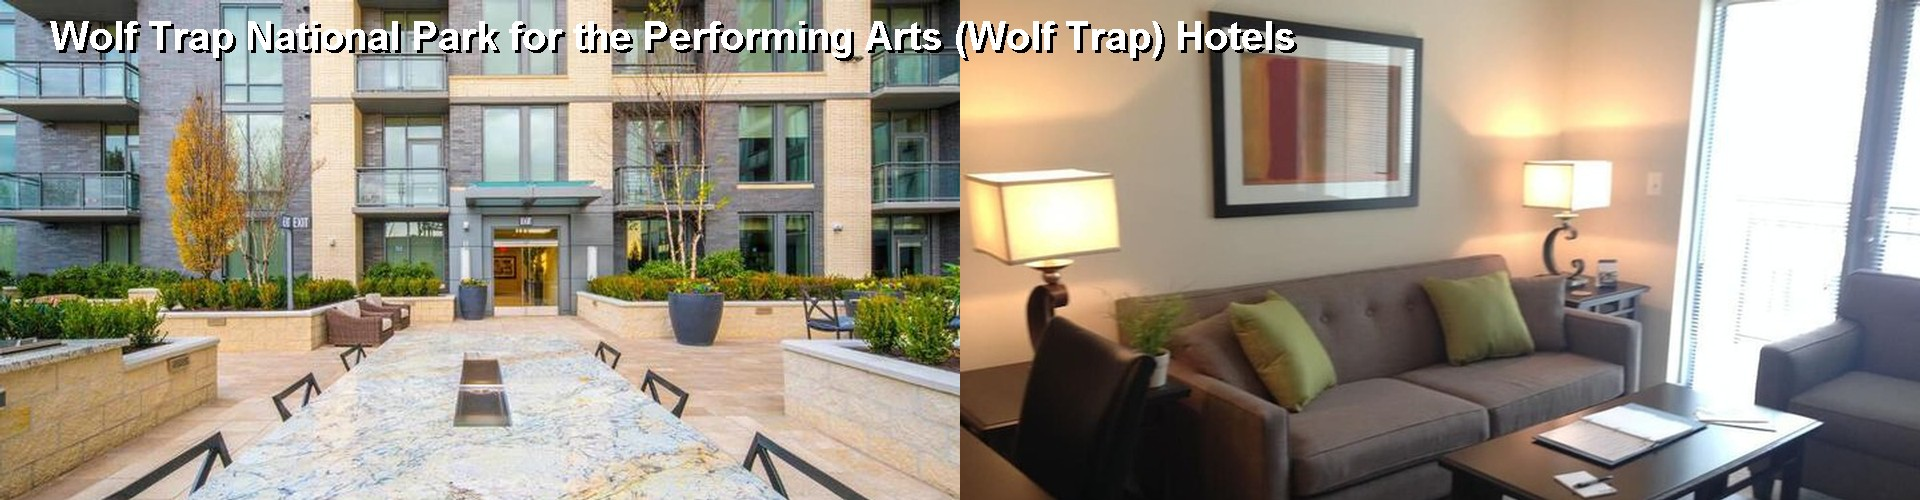 5 Best Hotels near Wolf Trap National Park for the Performing Arts (Wolf Trap)